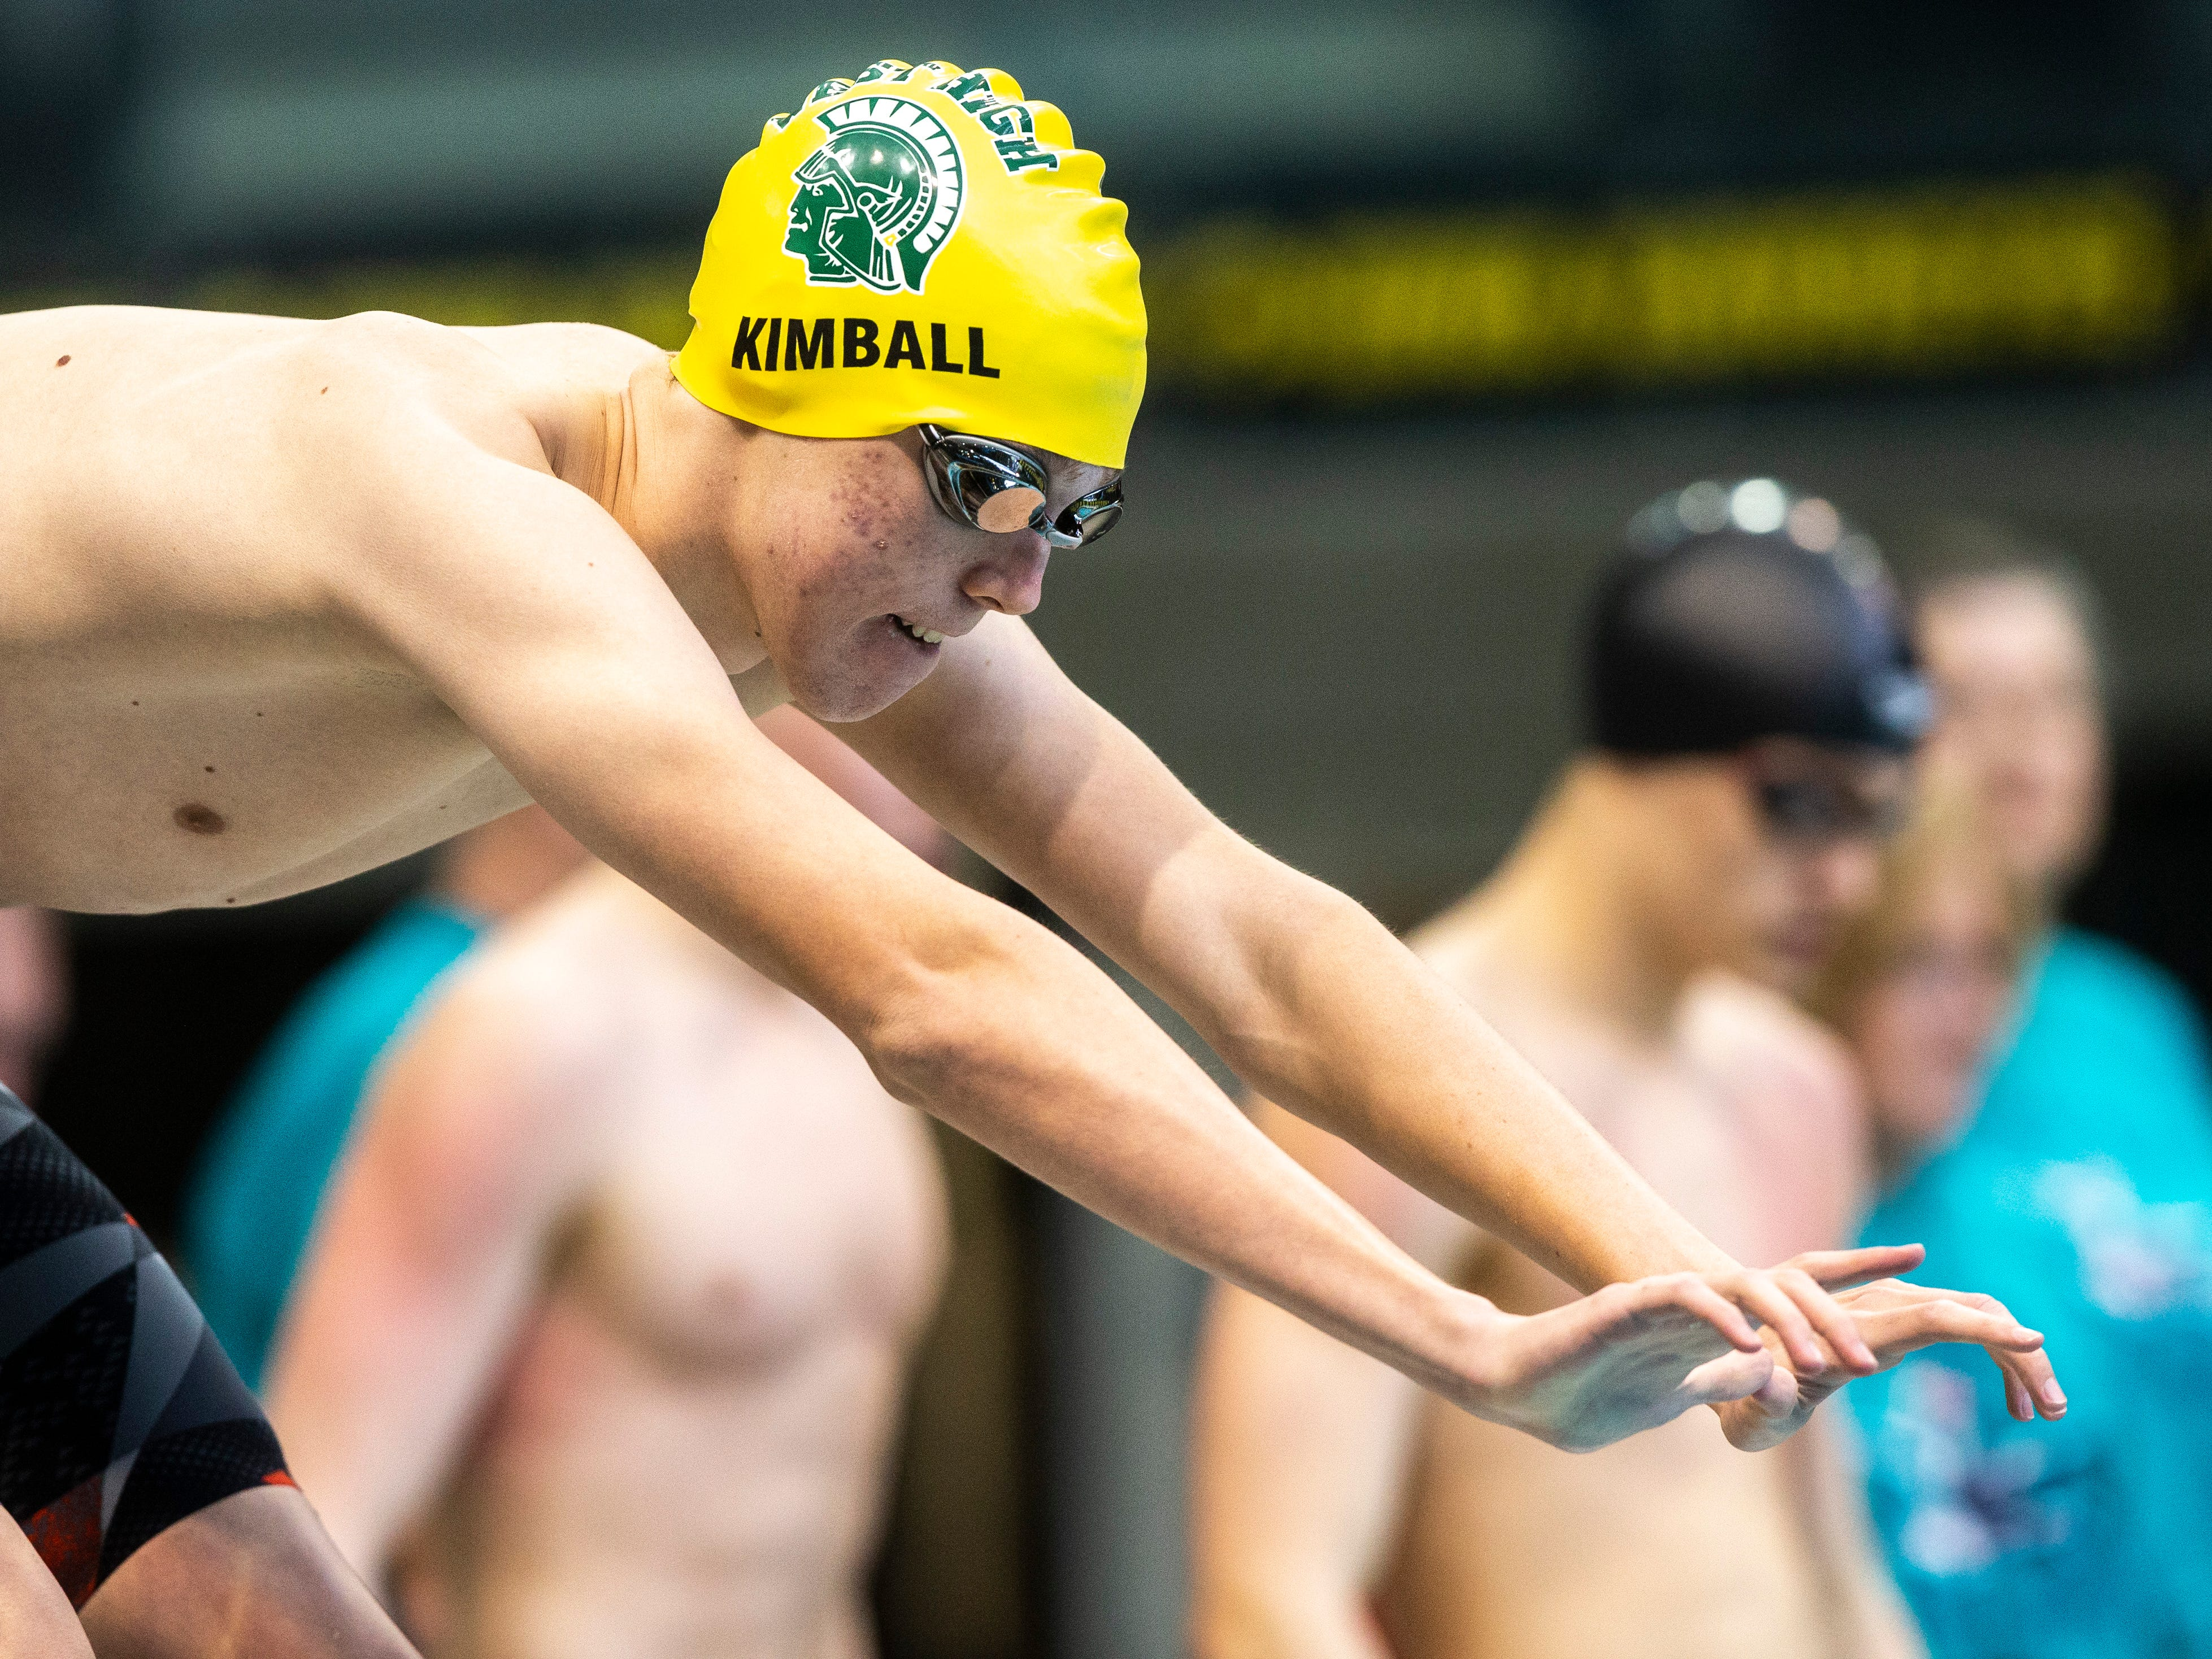 Iowa City West junior Michael Kimball gets set on the blocks in the third heat of 200 yard freestyle relay during the Iowa boys' state swimming regional championship meet on Saturday, Feb. 9, 2019 at Campus Recreation and Wellness Center on the University of Iowa campus in Iowa City, Iowa.